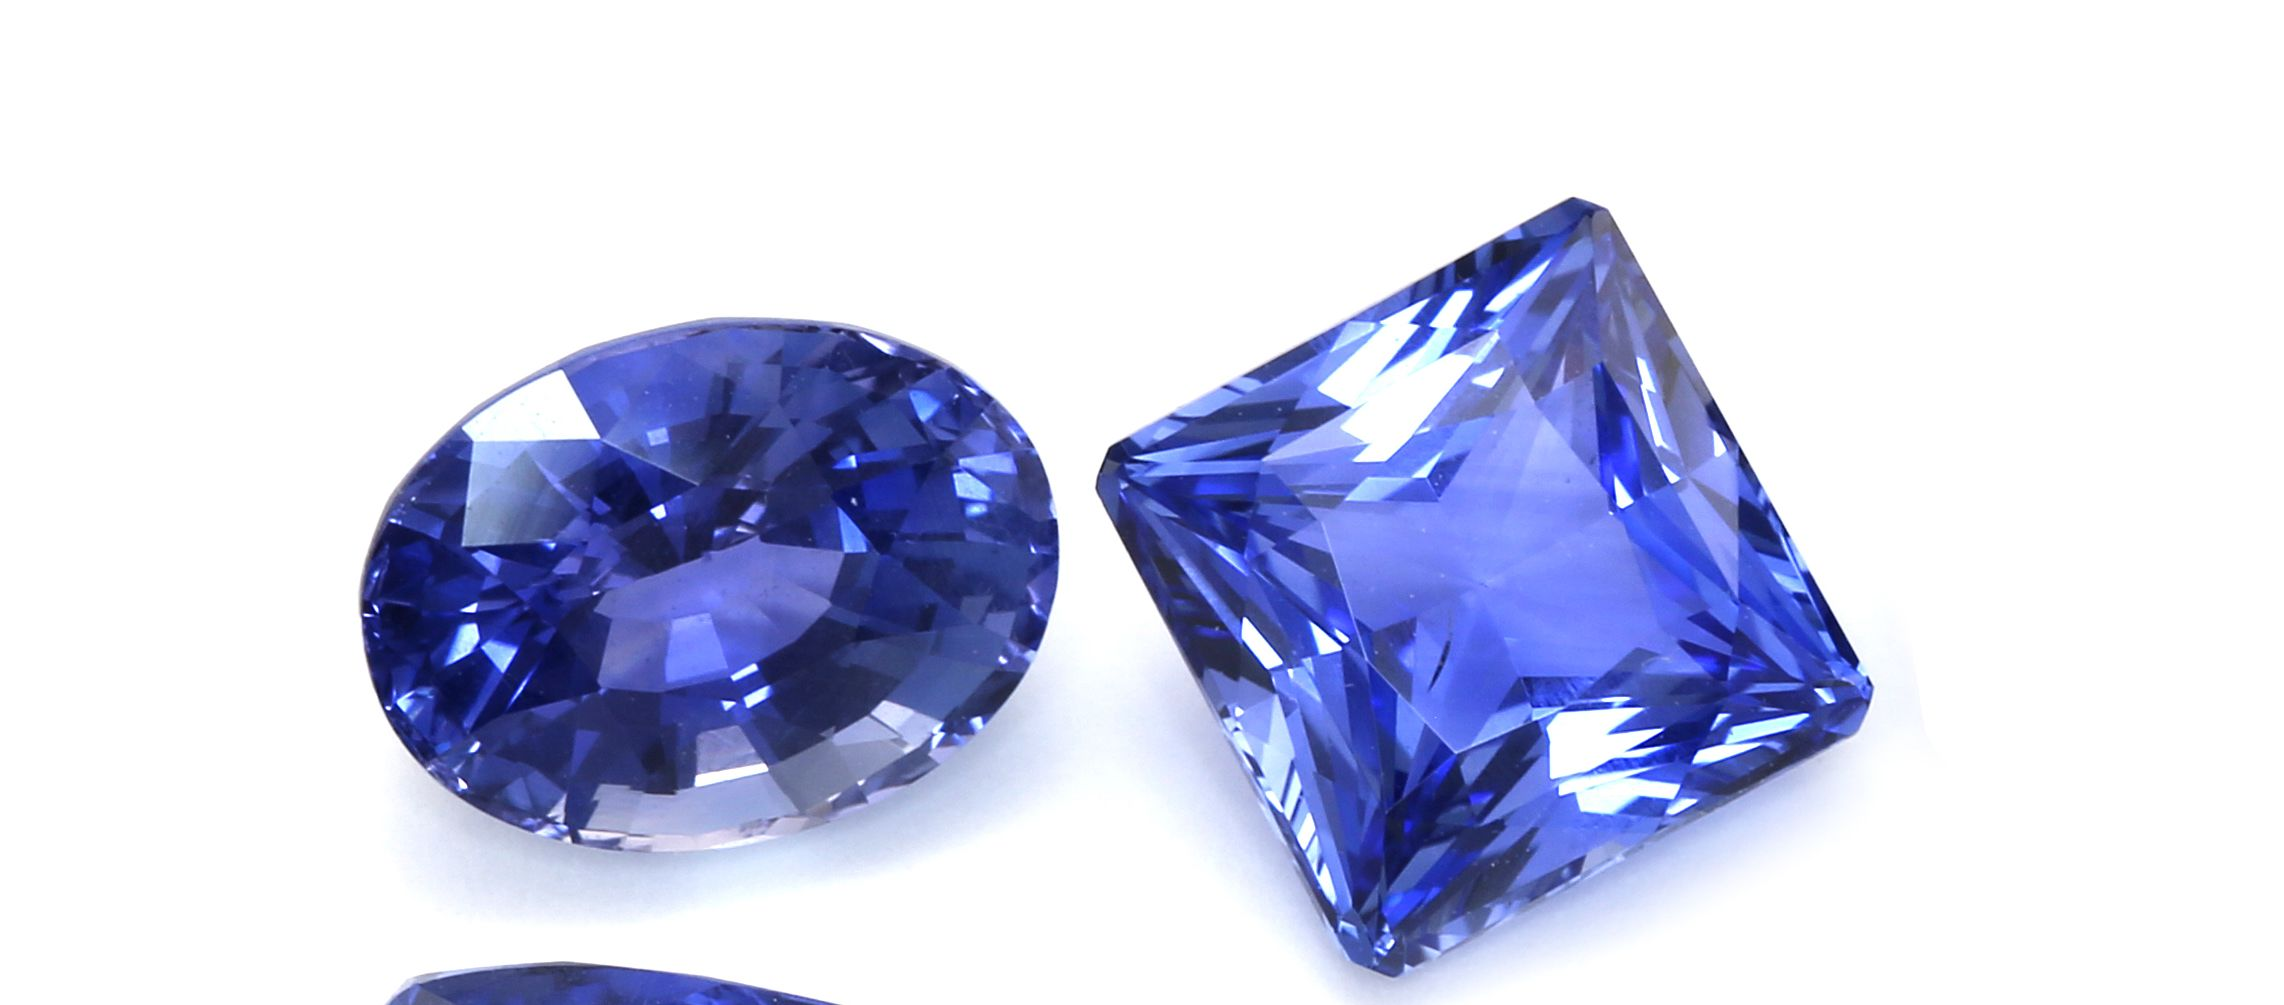 Blue Sapphires A Guide On Judging Quality In Blue Sapphires September Birthstone Blue Sapphire Birthstones